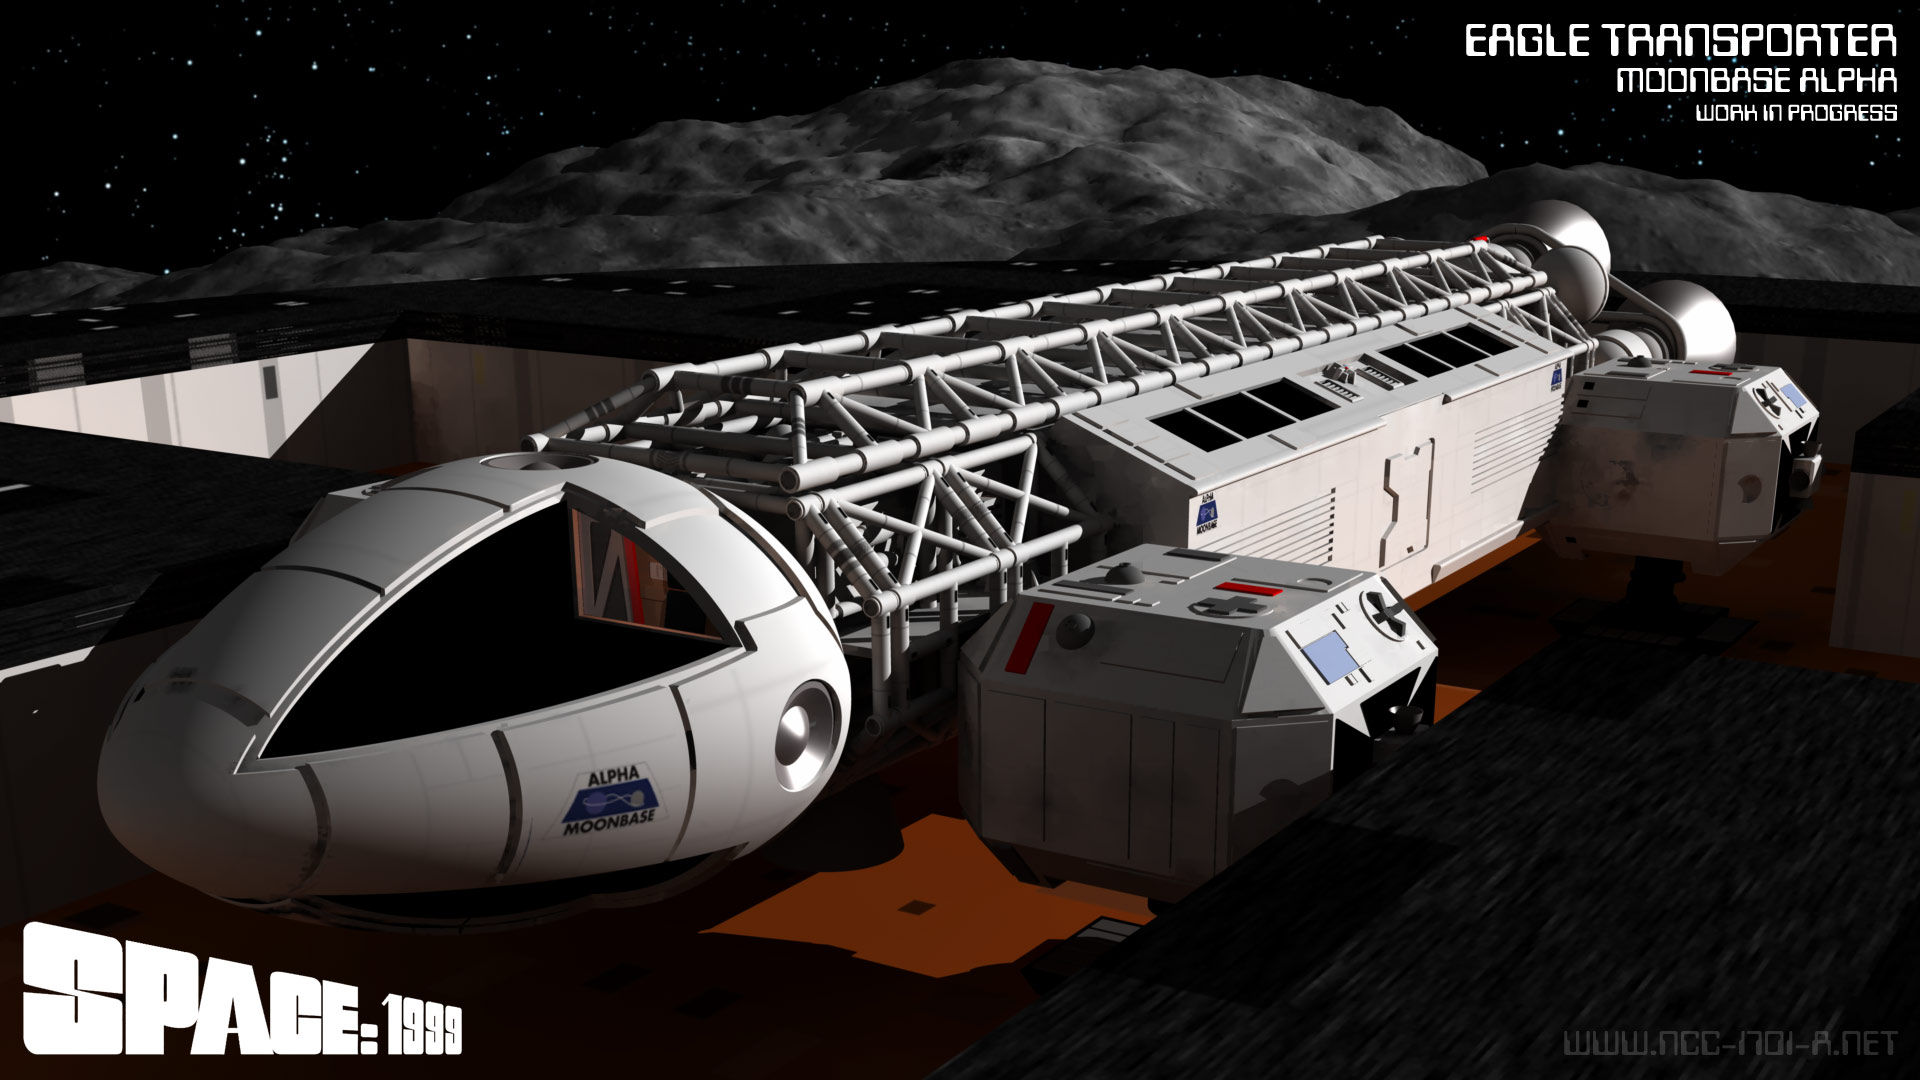 Space 1999 Saturday - Eagle Ready by STLegends